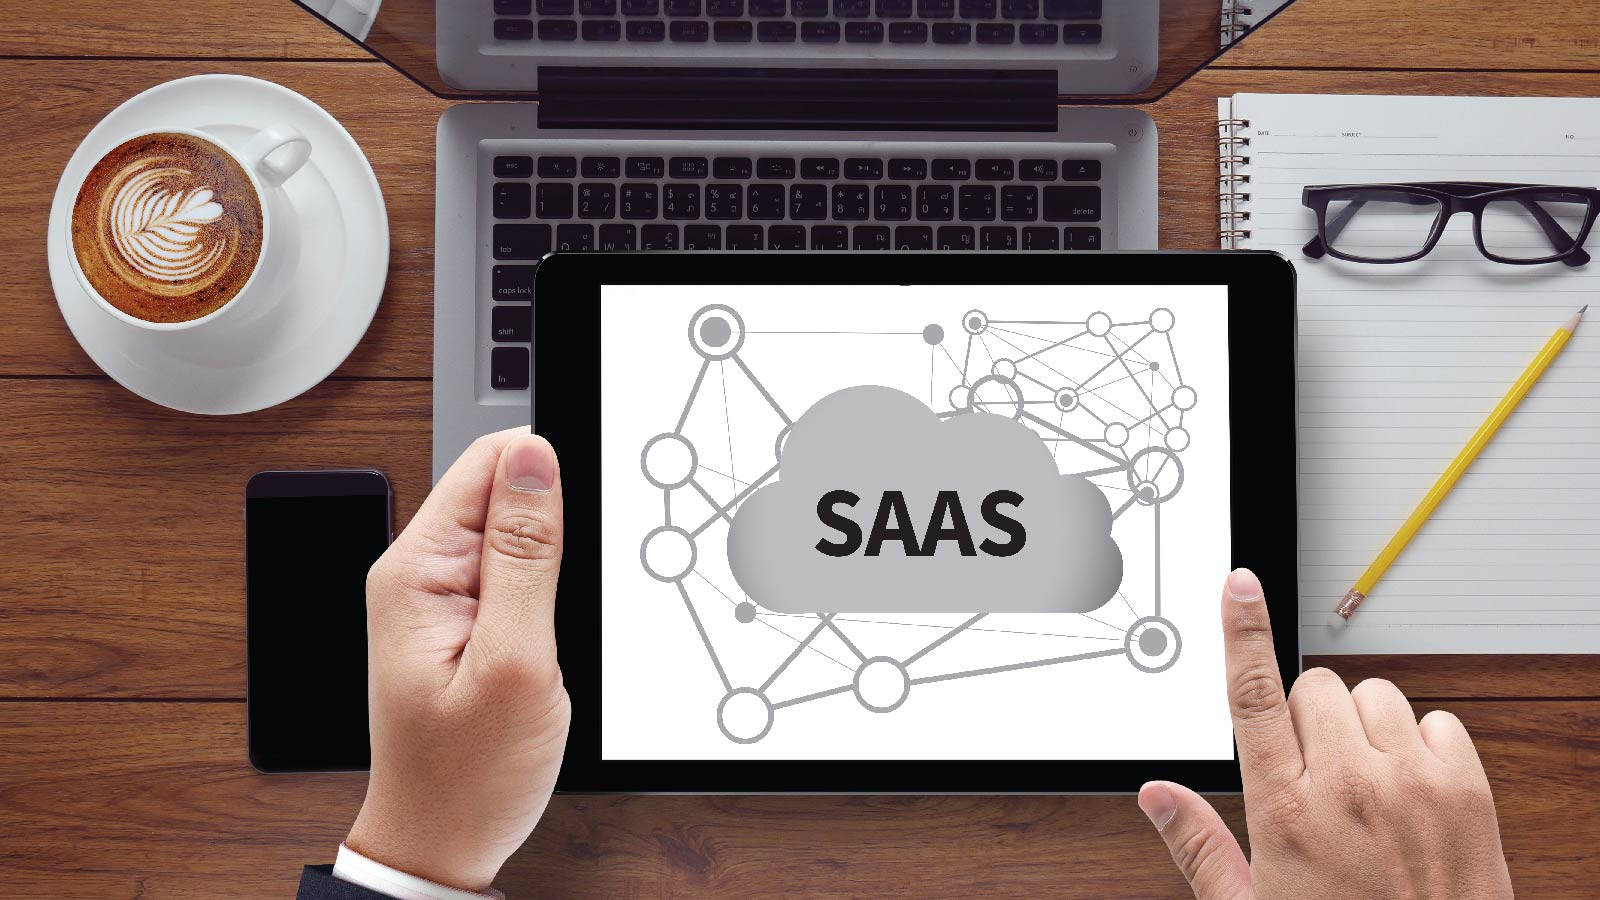 SaaS Implementation in Organizations Stimulating Operational Risk and Complexity